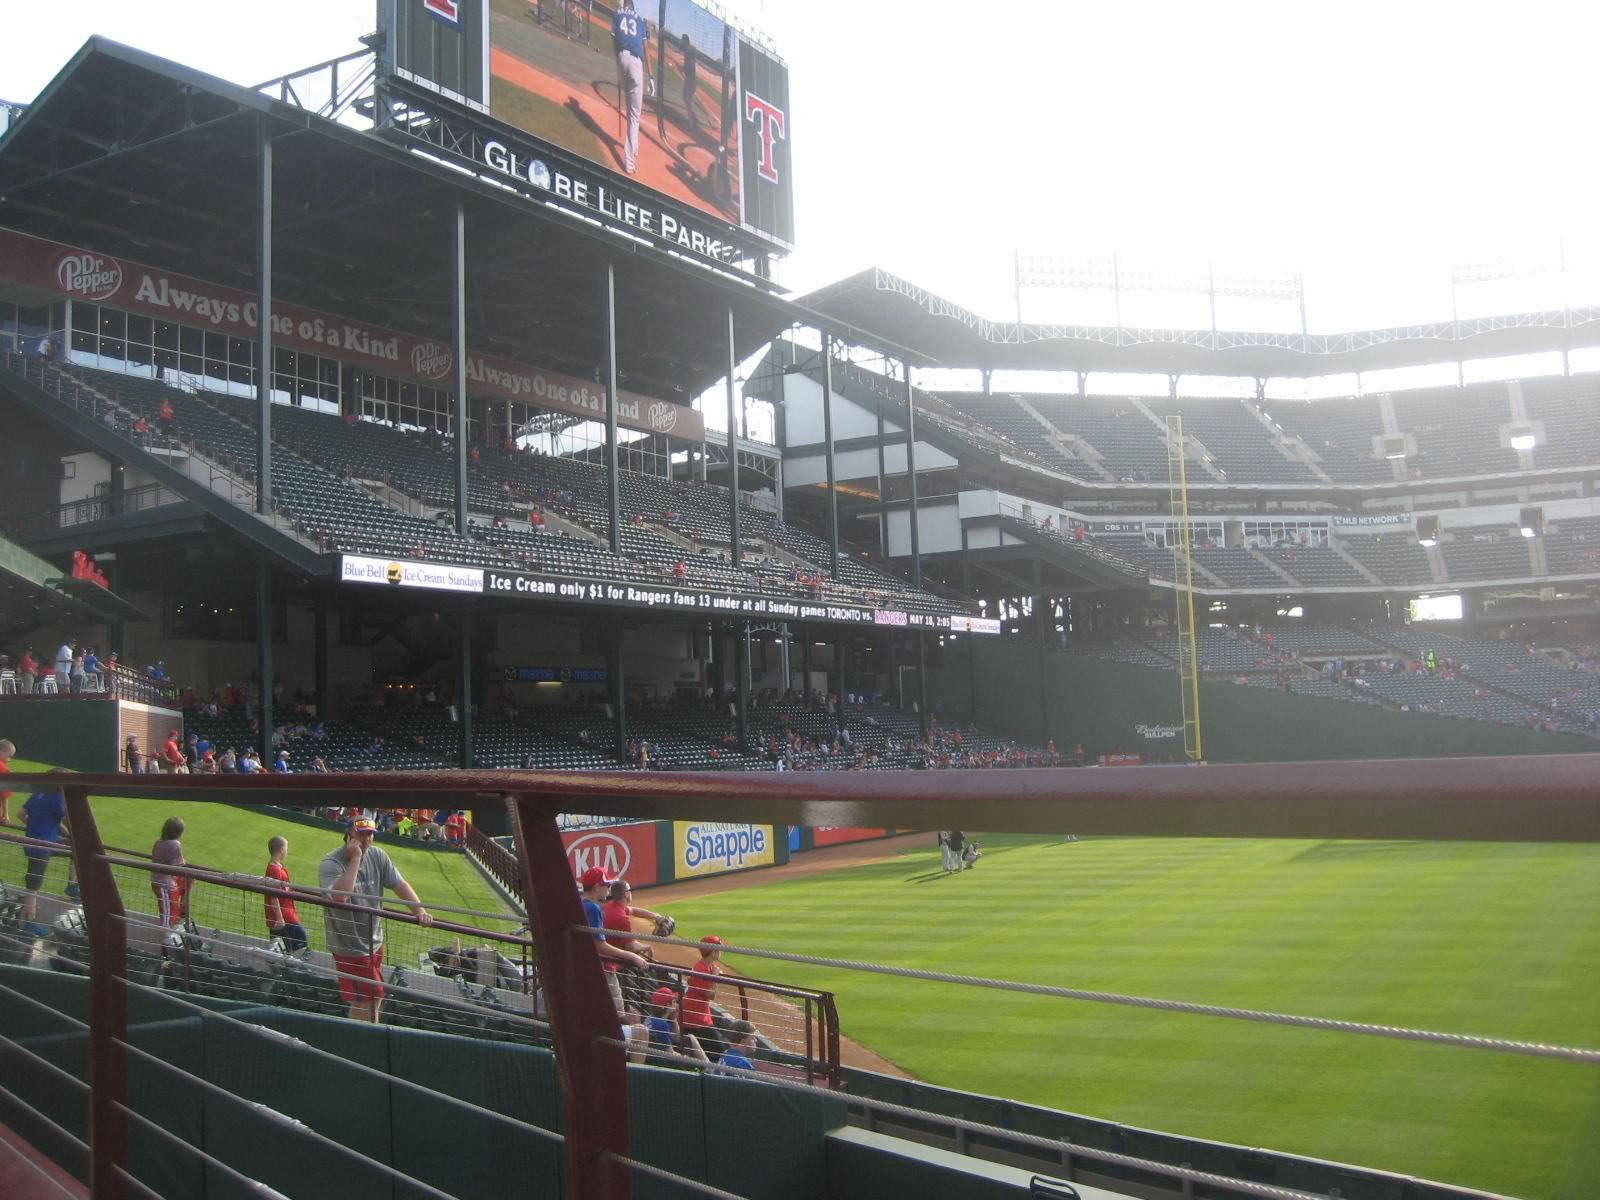 Seat View for Globe Life Park Section 54, Row 10, Seat 1